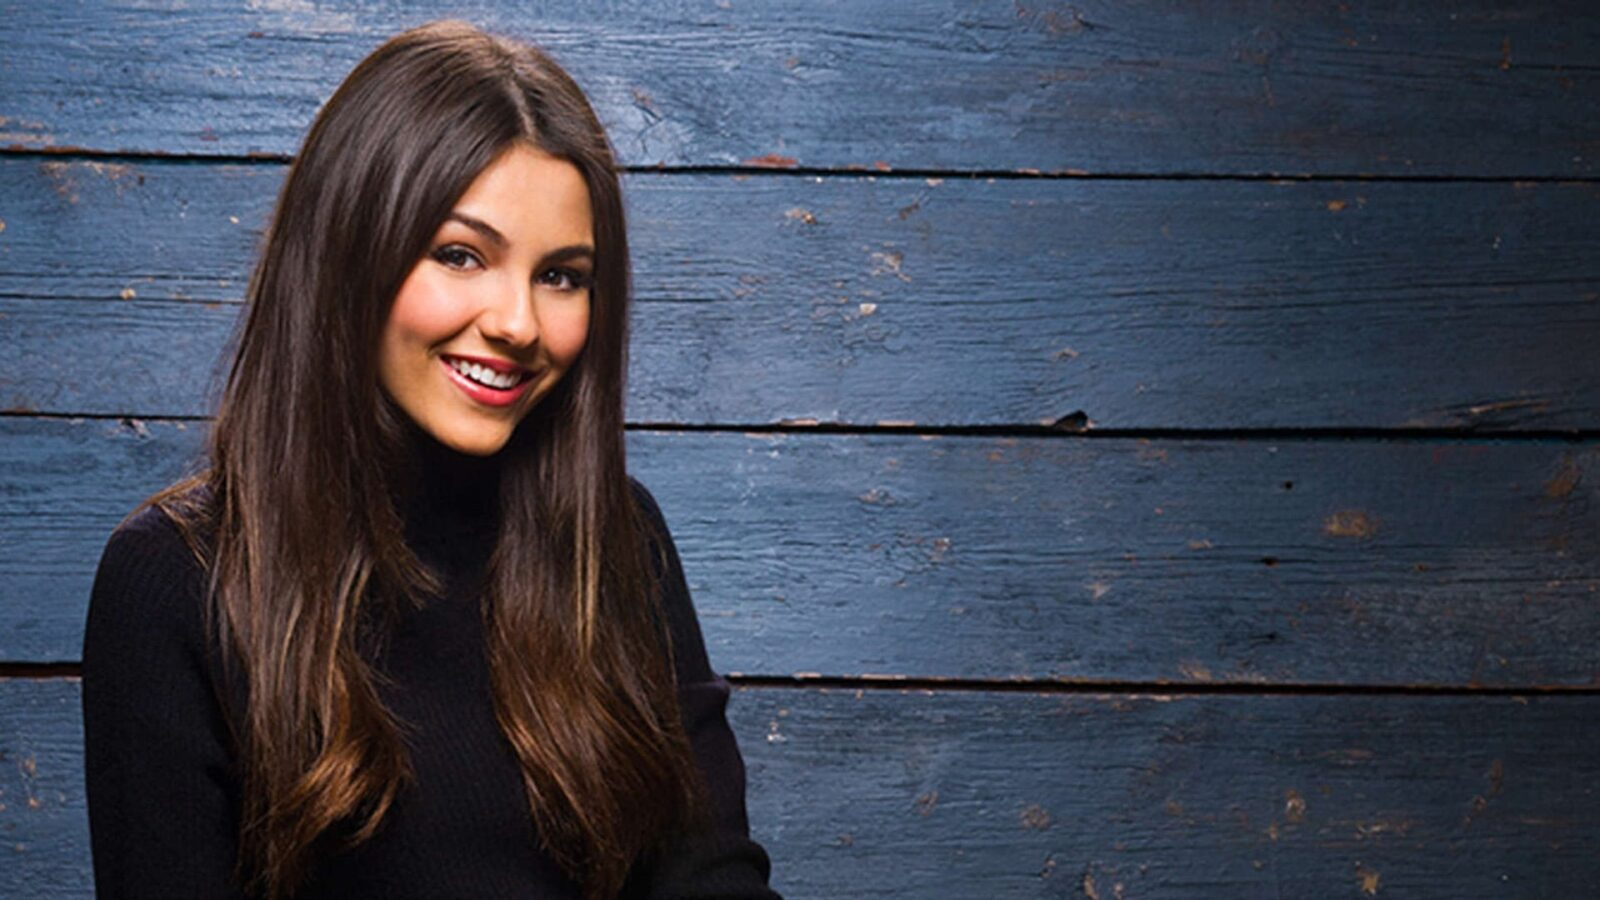 Anime Sunset Wallpaper Victoria Justice Hd Wallpapers High Quality